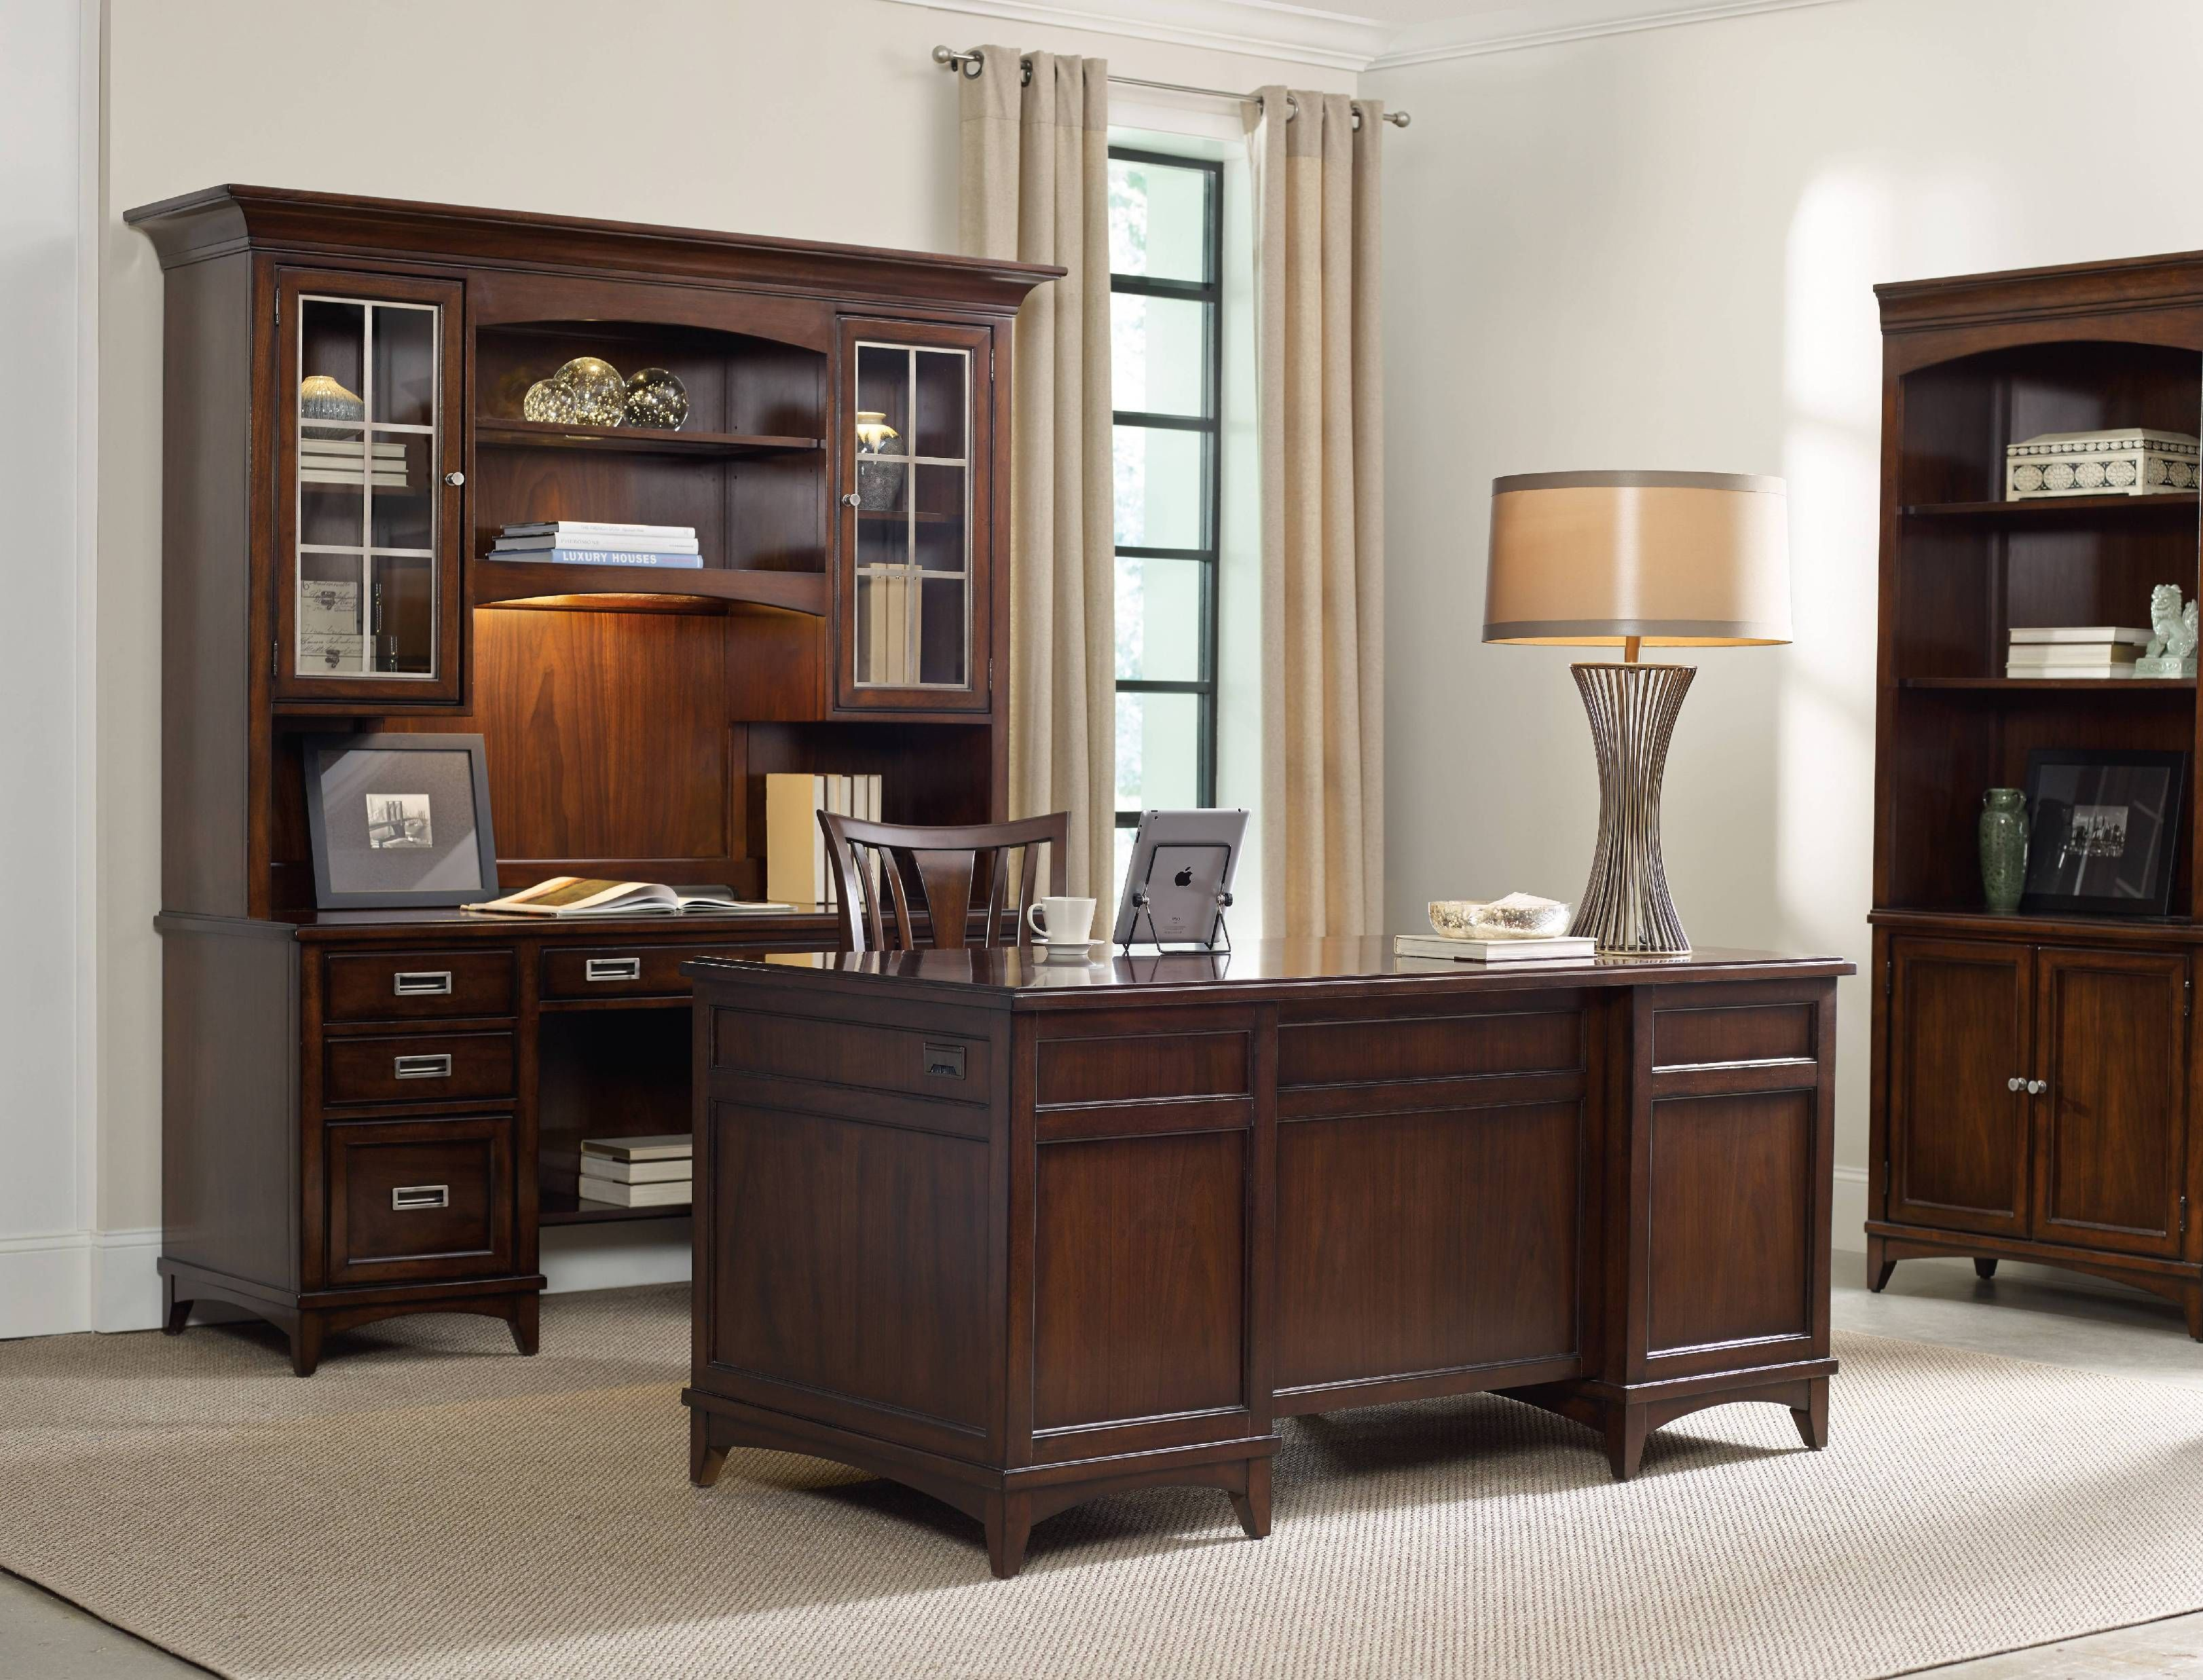 hooker furniture home office latitude executive desk 5167 10562 ramsey furniture company covington